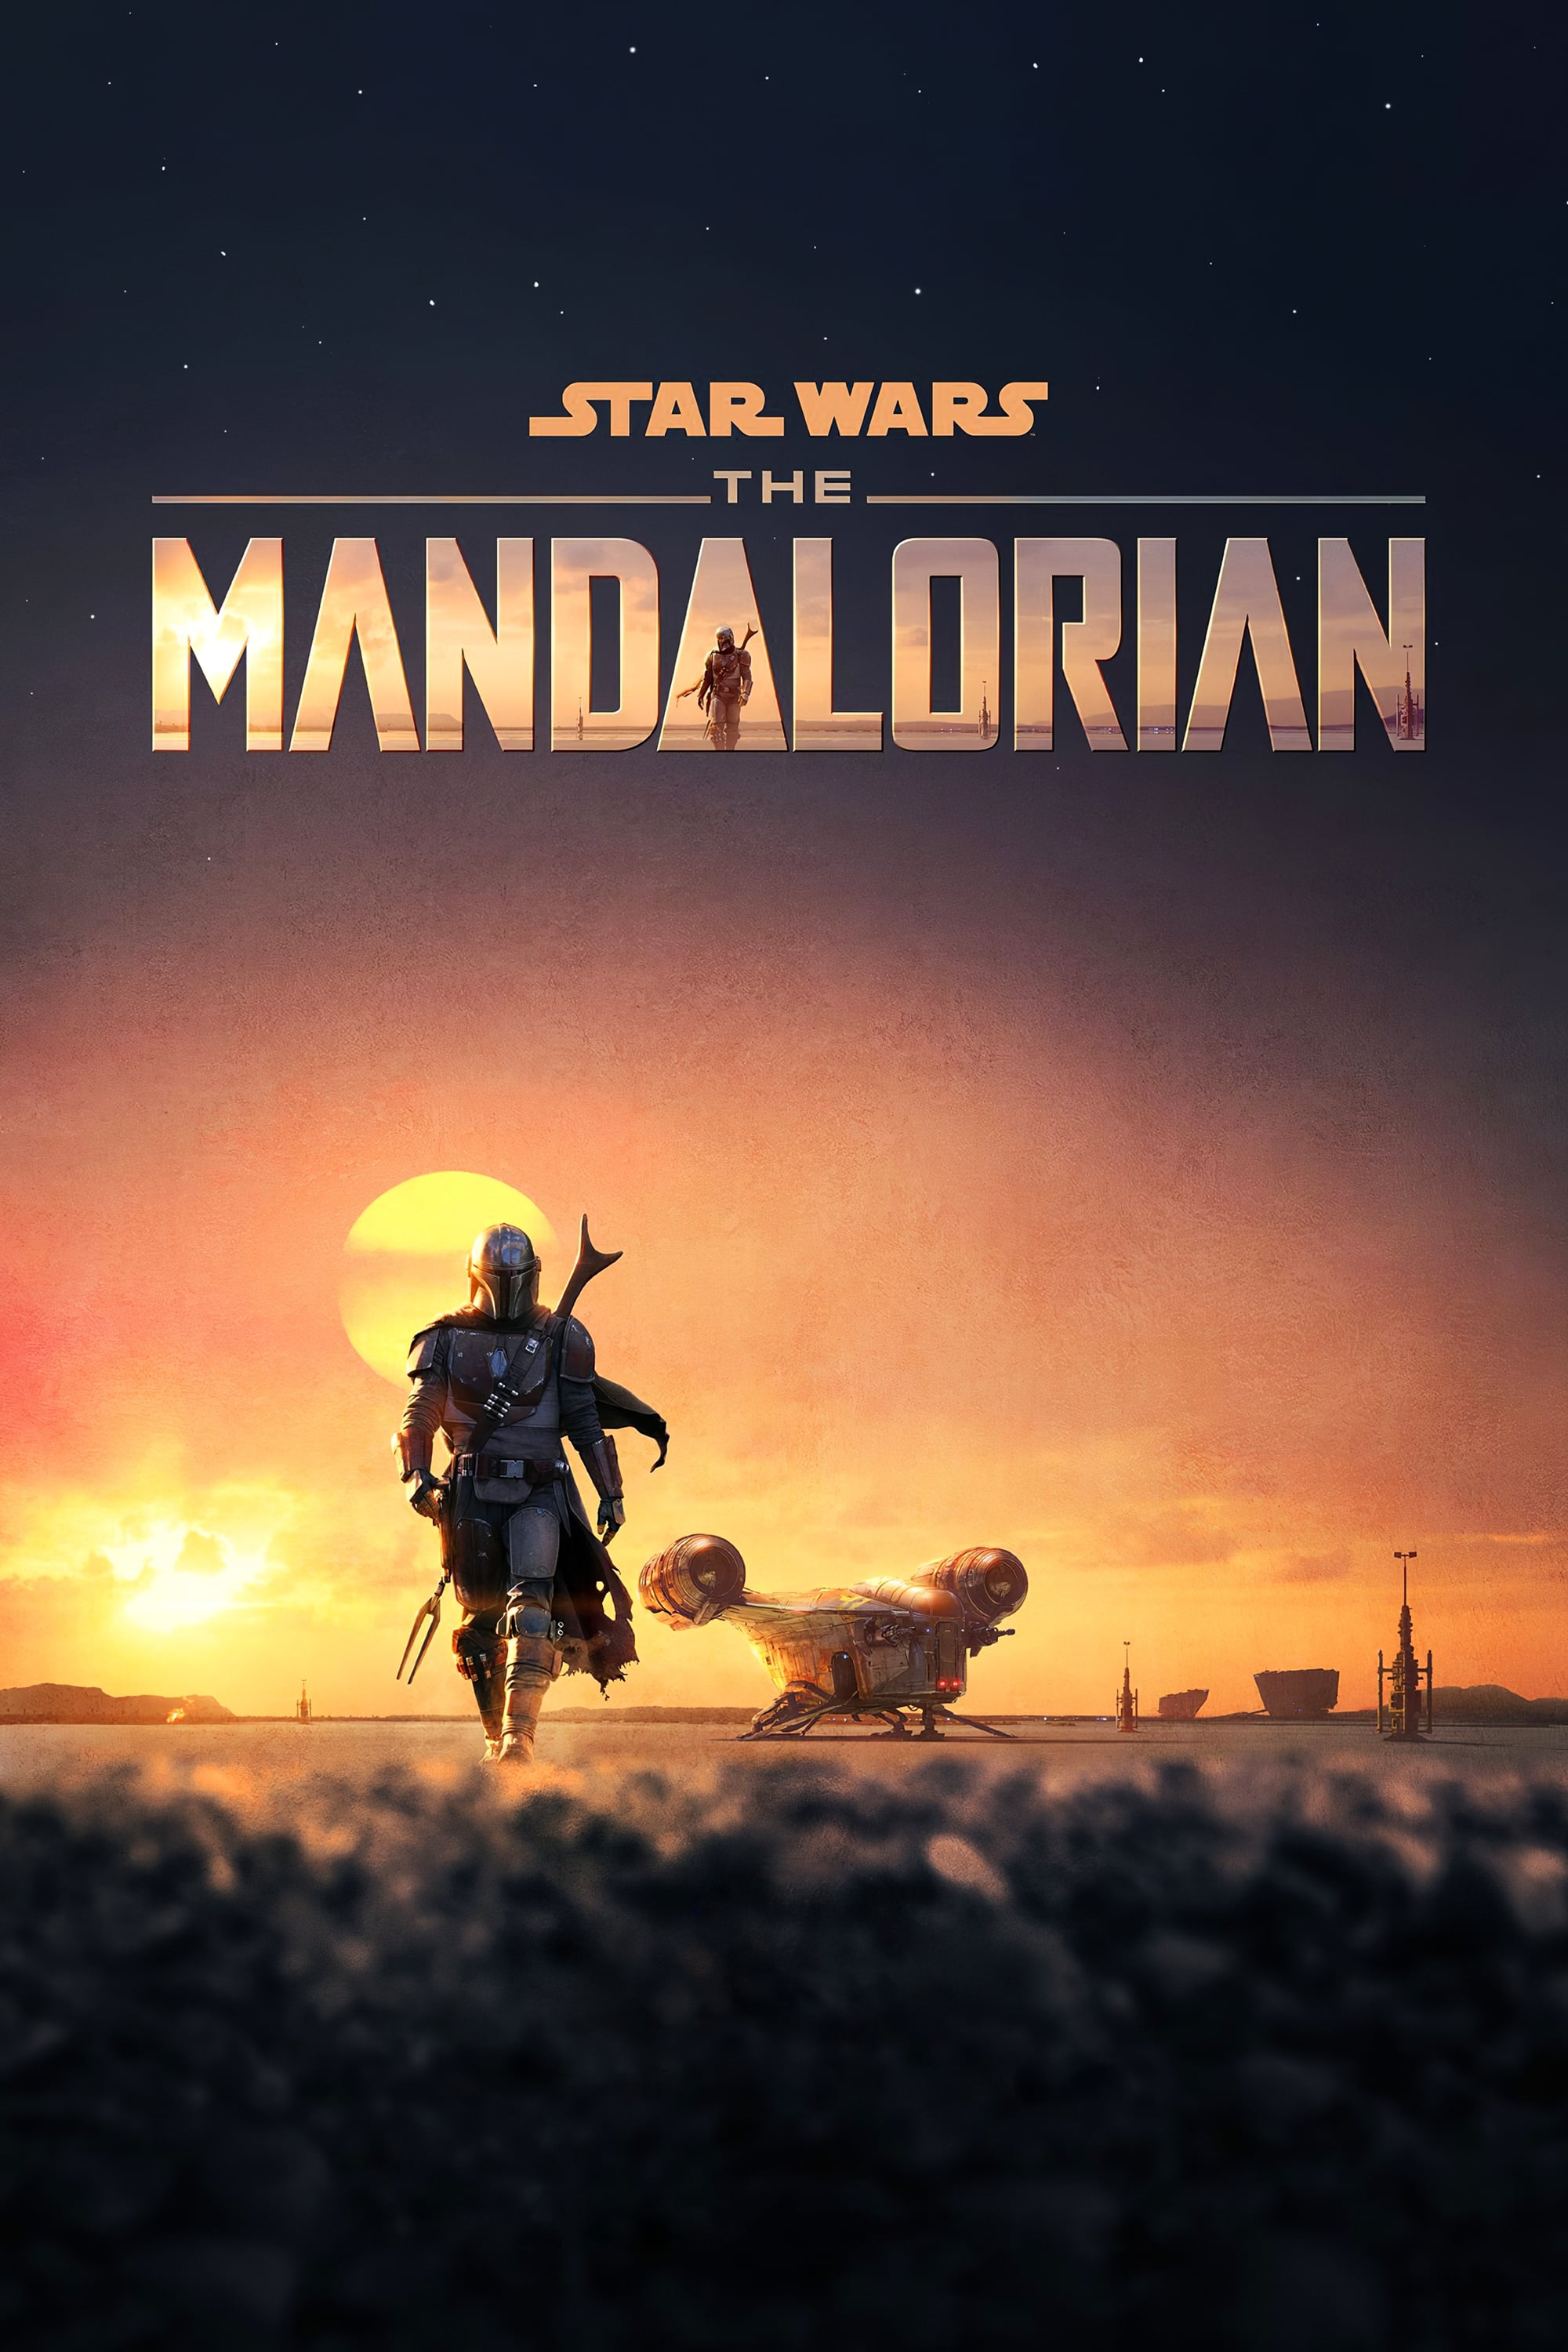 The Mandalorian